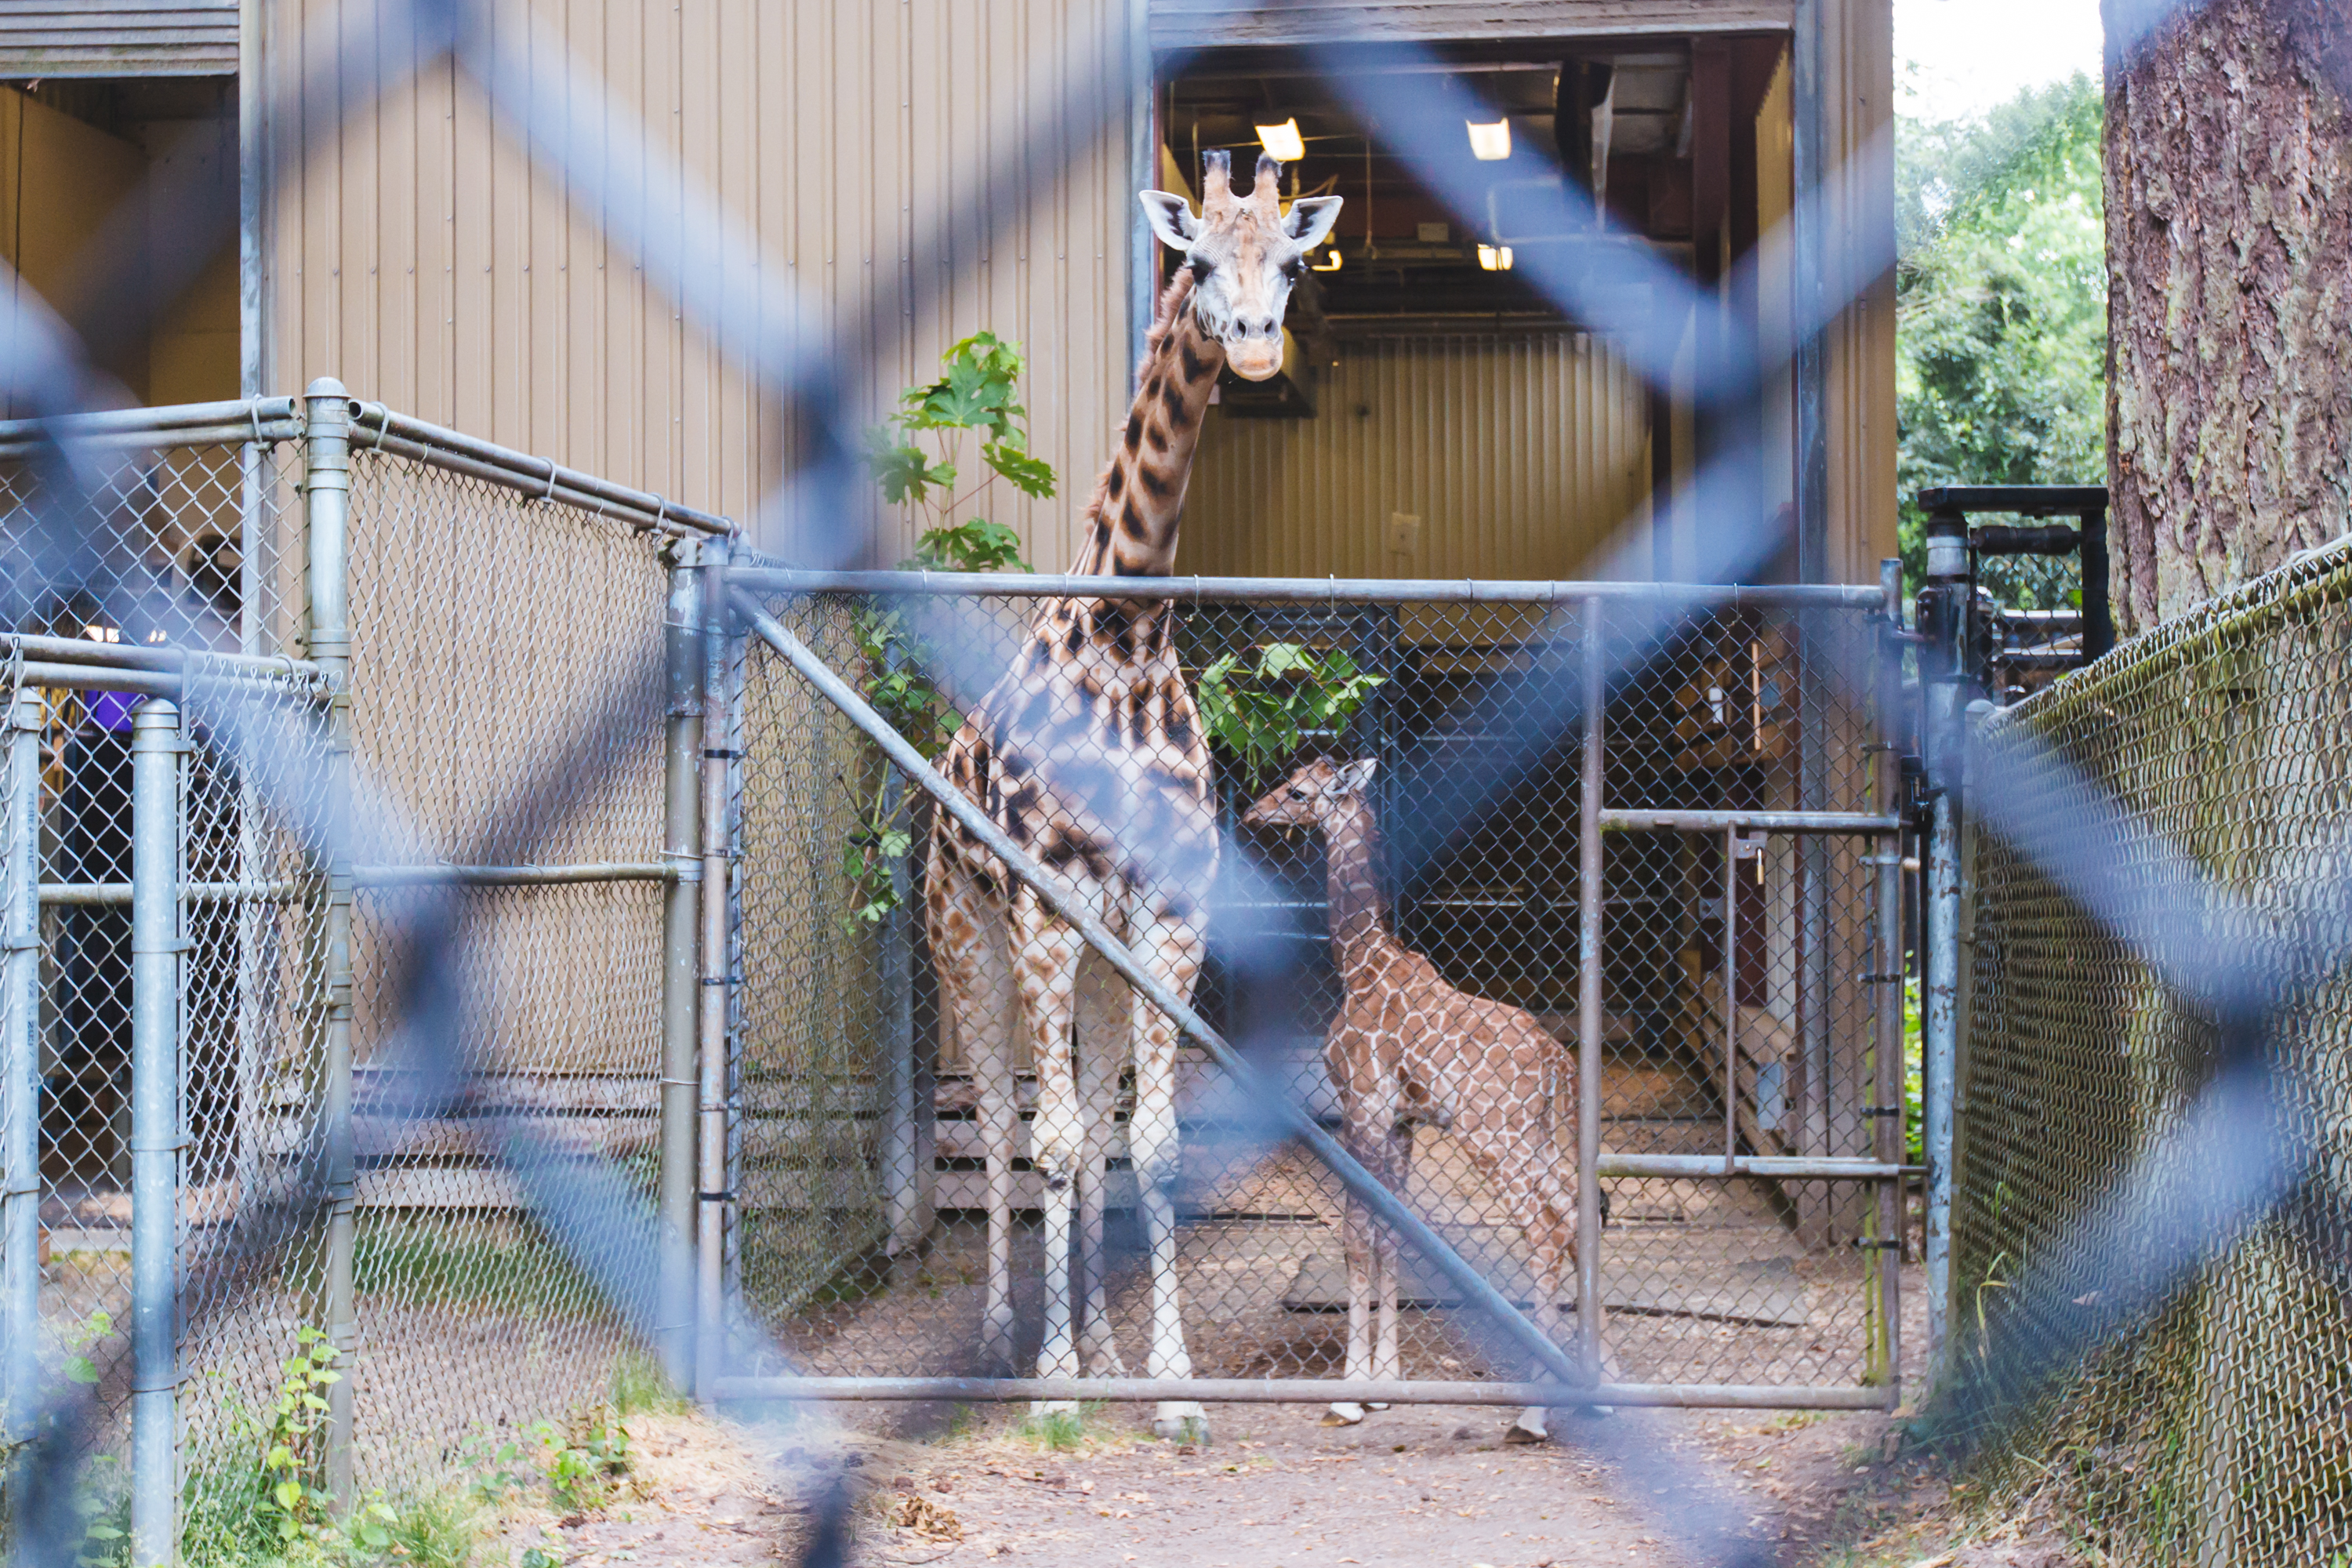 "After one month of life, Woodland Park Zoo's tallest baby finally has a name! Meet Lulu. which means ""pearl"" in Swahili. Donor Al Buckingham won the honor of naming the little one after a generous donation to the zoo at their annual fundraiser, Jungle Party. Lulu is the offspring of 9-year-old mom Tufani and 4-year-old dad Dave; she is the first baby for both parents. Her birth marked the second viable birth of a giraffe at the zoo since 2013 and the third in 20 years. She is now 7 feet tall, and weighs 209 pounds. (Image: Sunita Martini / Seattle Refined)"